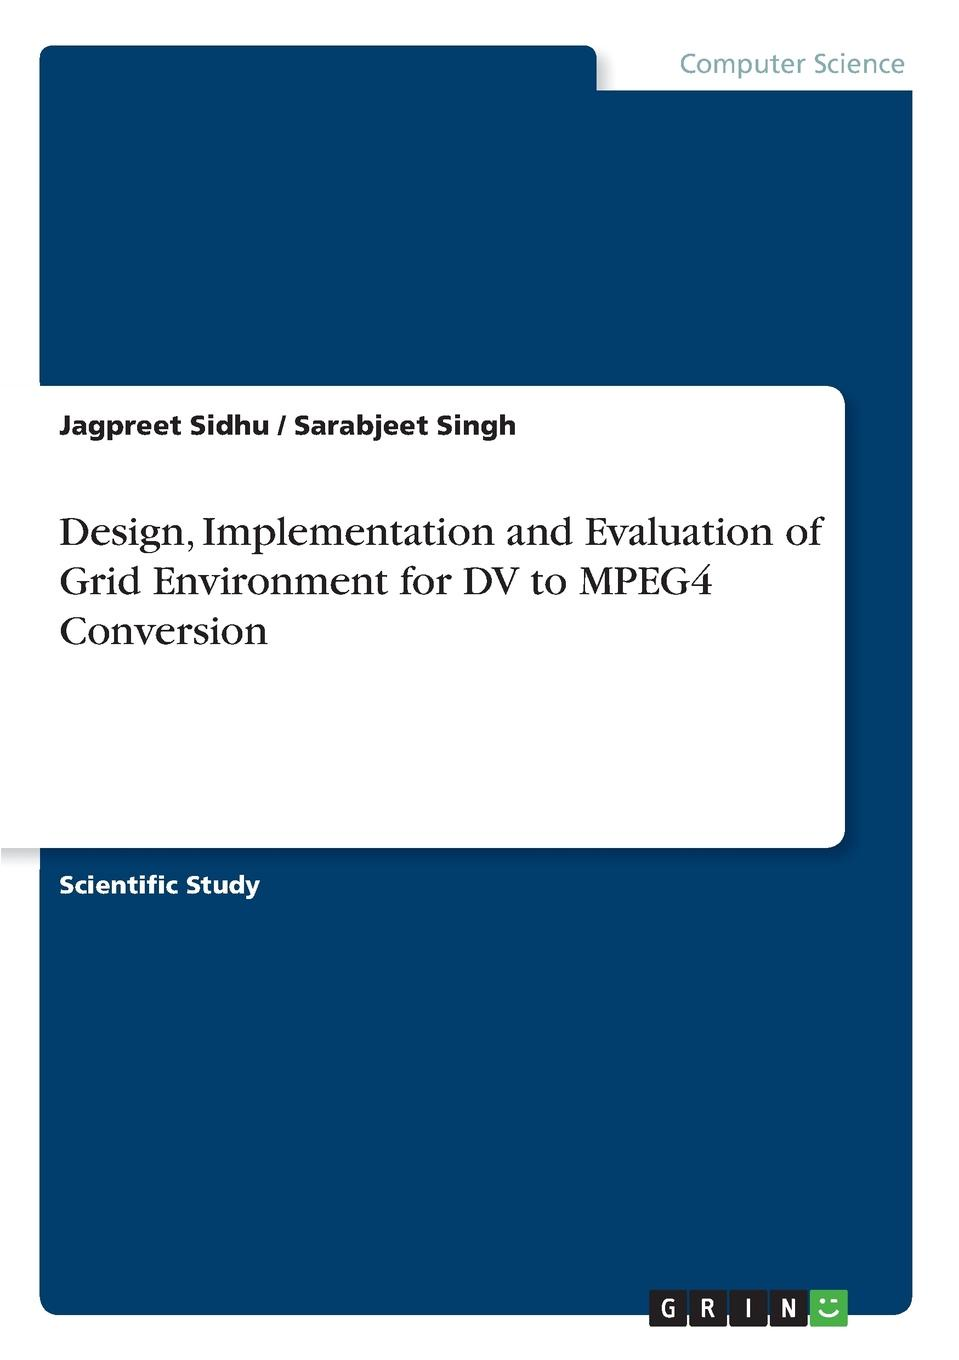 Jagpreet Sidhu, Sarabjeet Singh Design, Implementation and Evaluation of Grid Environment for DV to MPEG4 Conversion grid it grid creative storage